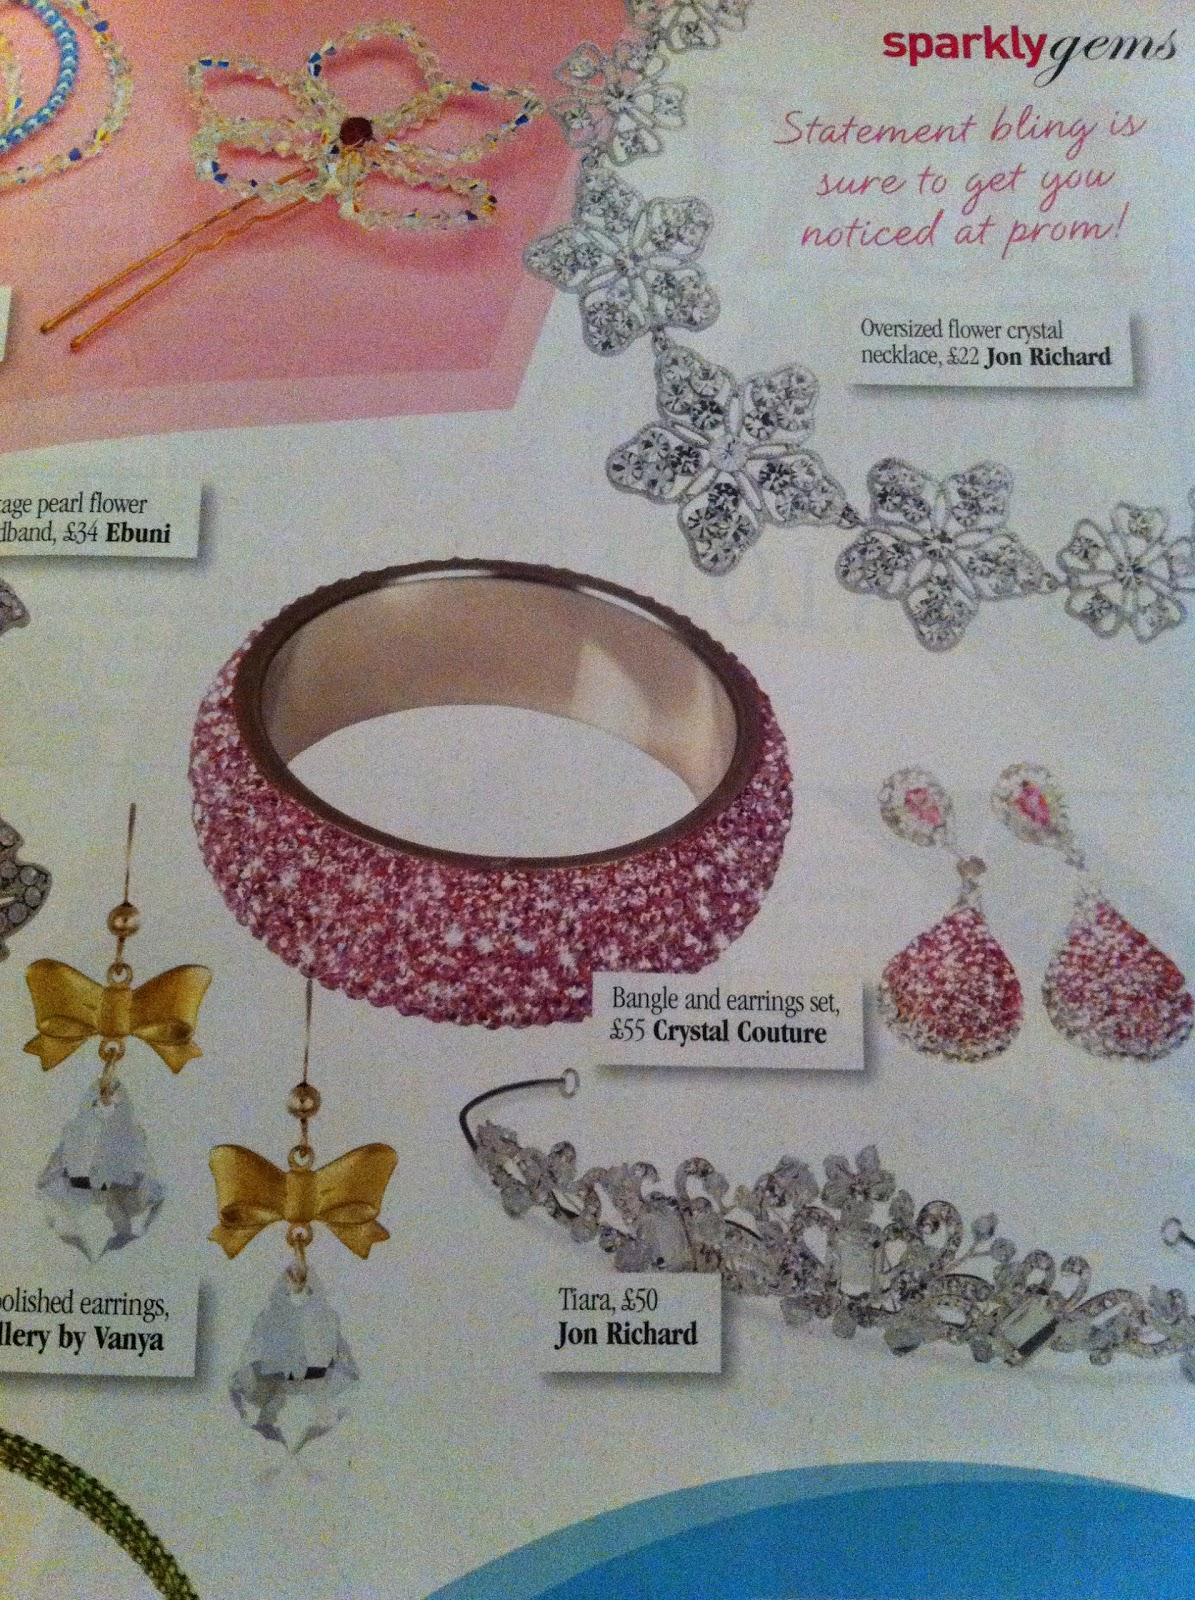 http://1.bp.blogspot.com/-kFXZHPztwIE/T4AO85SOI5I/AAAAAAAACIs/xSThpMgKnTU/s1600/Prom+Magazine++Pink+Bangle+&+Earrings+Set.jpg